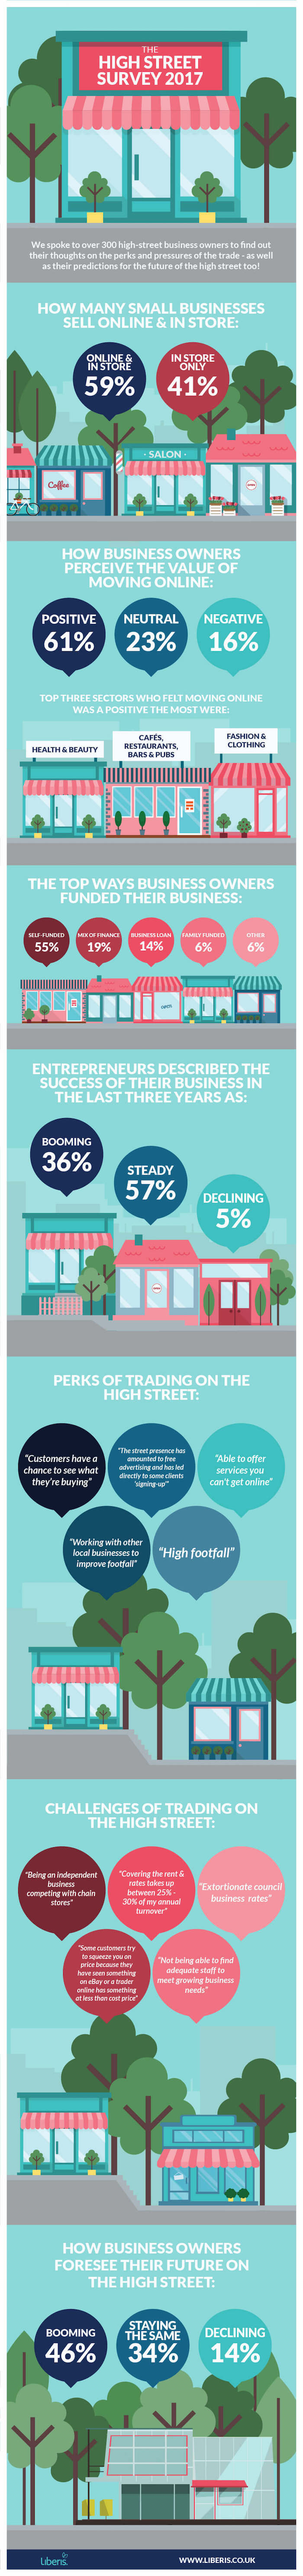 Trading on the High Street Survey Infographic